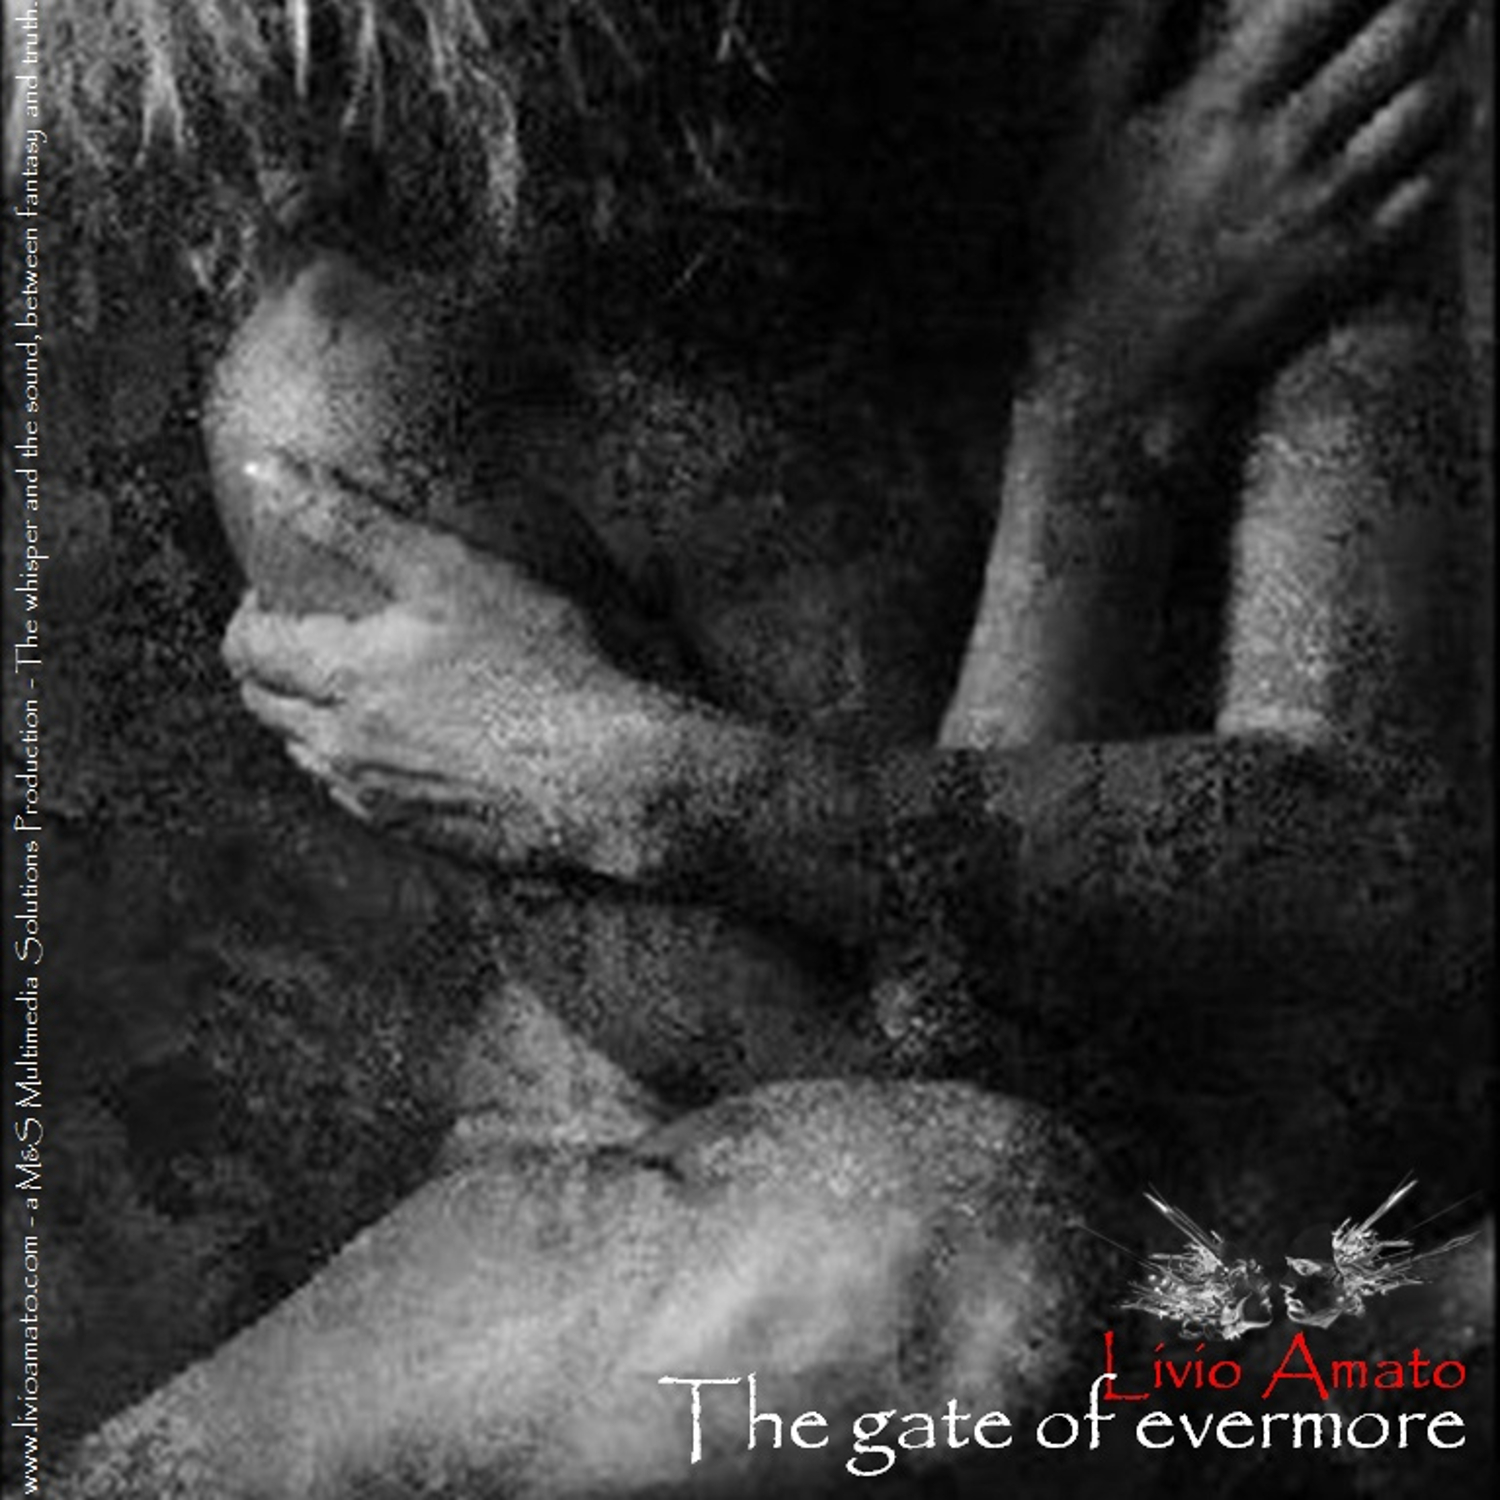 livio amato the gate of evermore